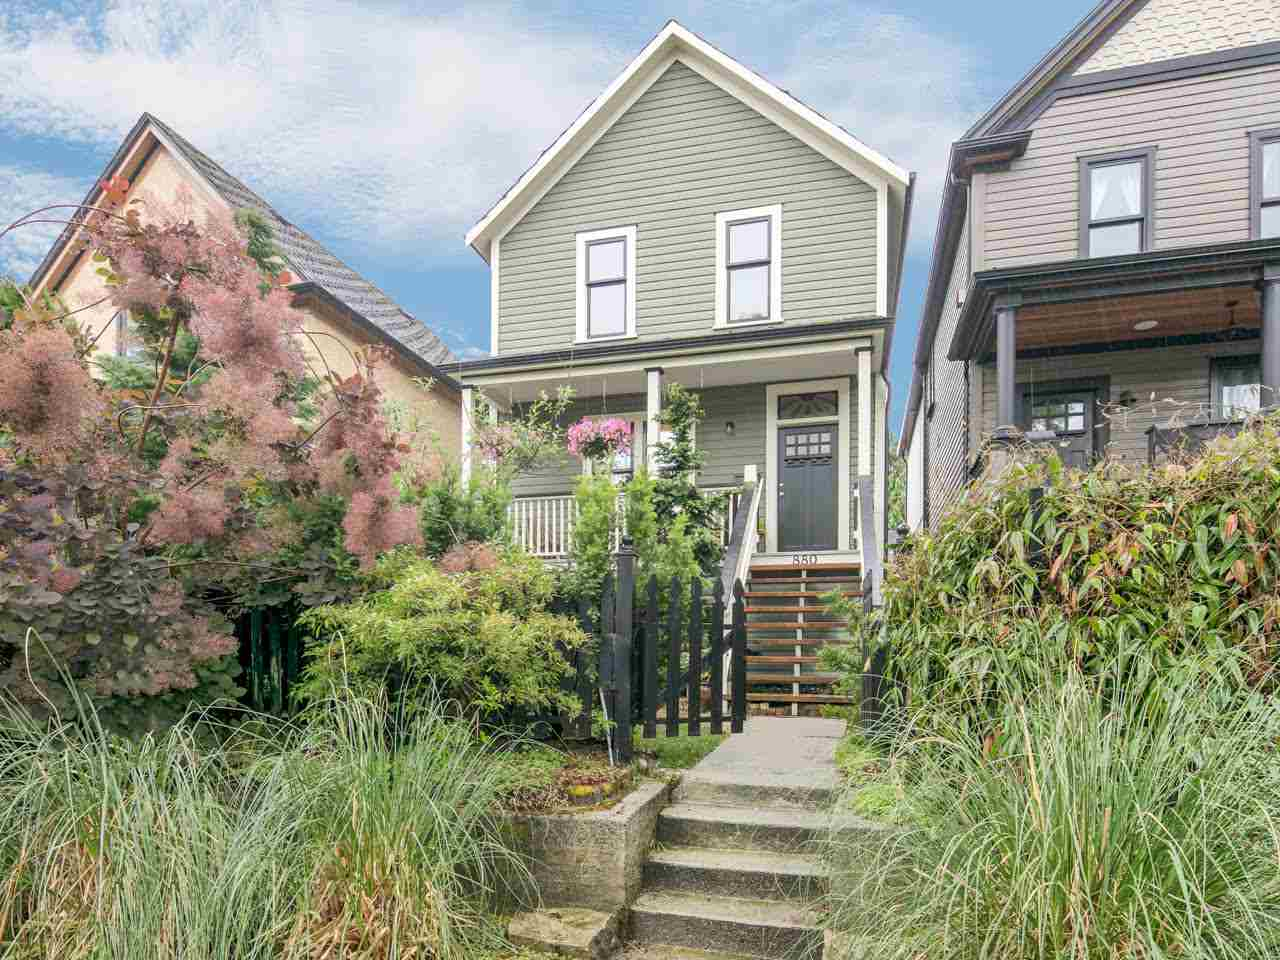 Main Photo: 880 KEEFER Street in Vancouver: Mount Pleasant VE House for sale (Vancouver East)  : MLS(r) # R2176389